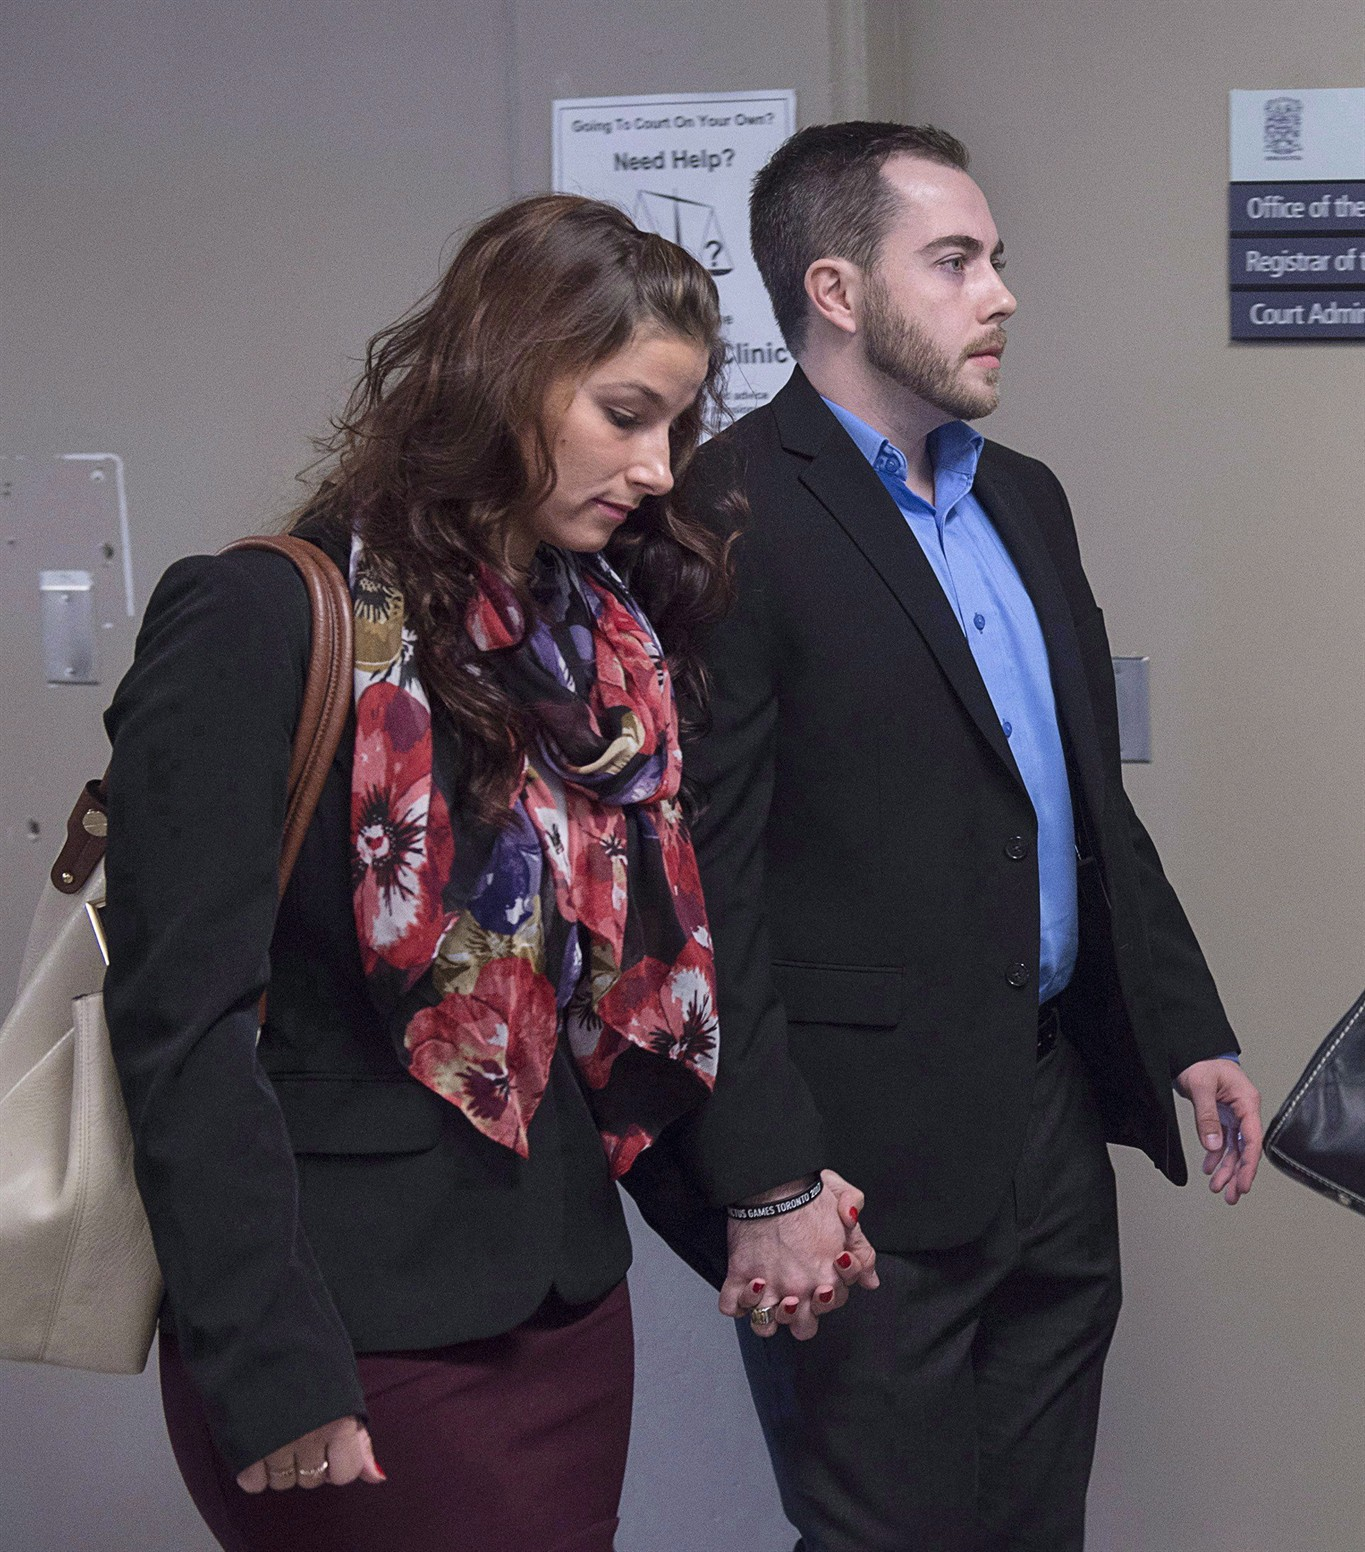 Common-law spouse of Halifax man convicted of murder calls